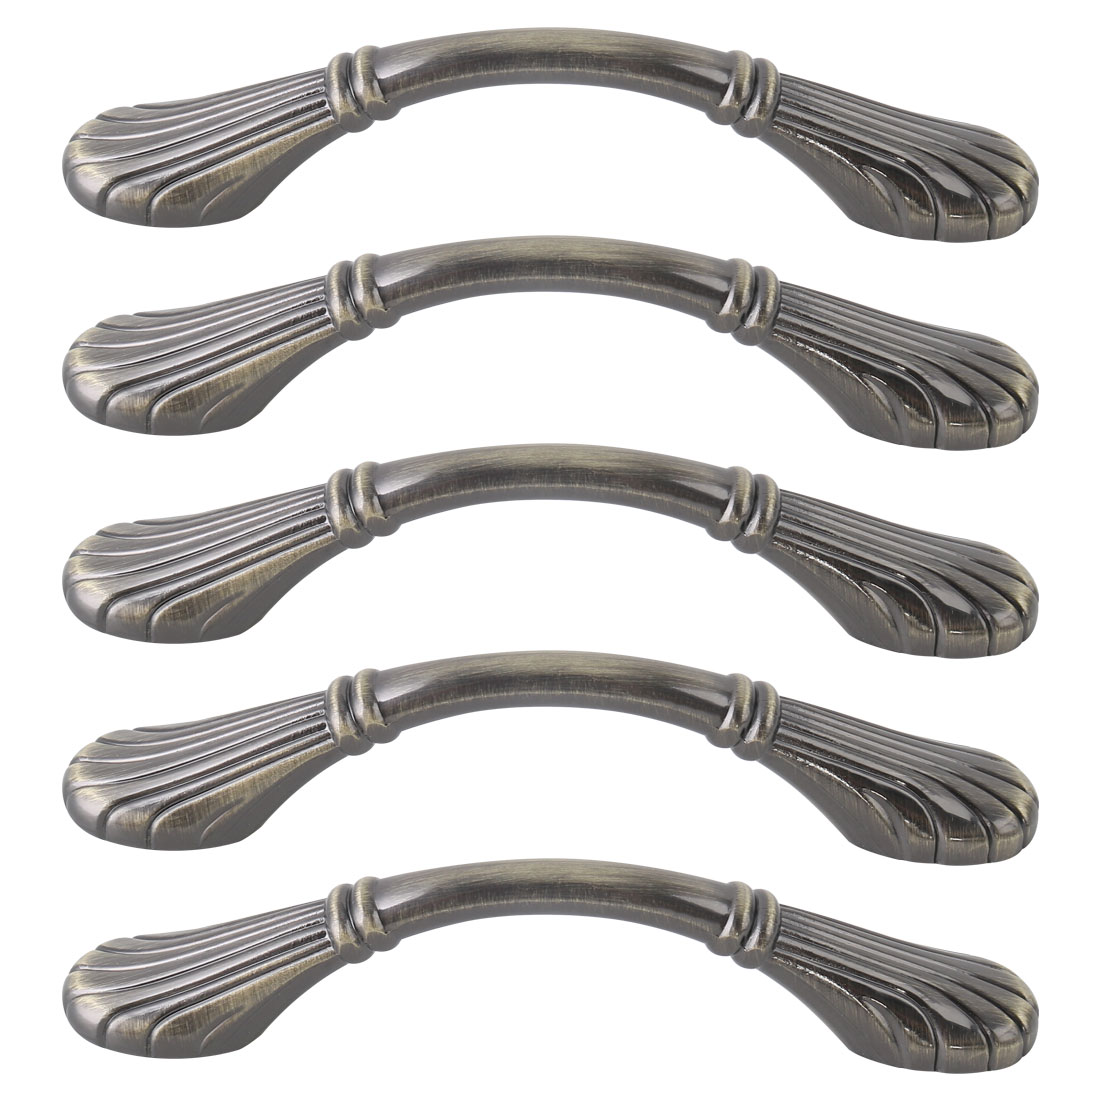 "Cabinet Handle Pull Handle 3.8"" Hole Center Cupboards Bronze Tone 5pcs"